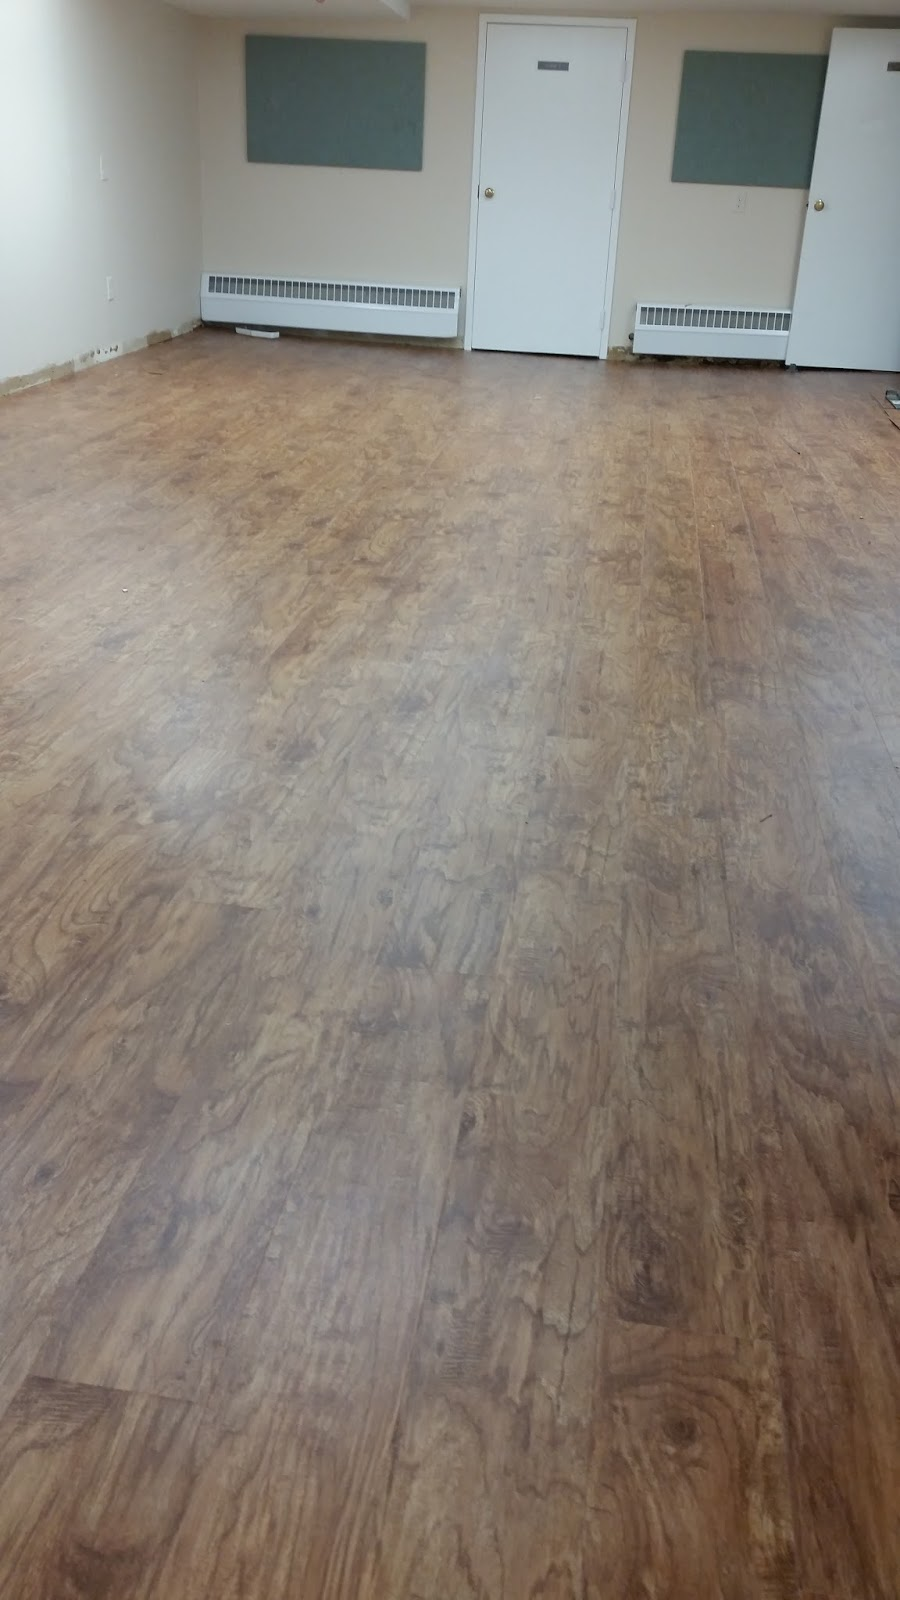 Flooring rva new community school richmond virginia for Luxury linoleum flooring